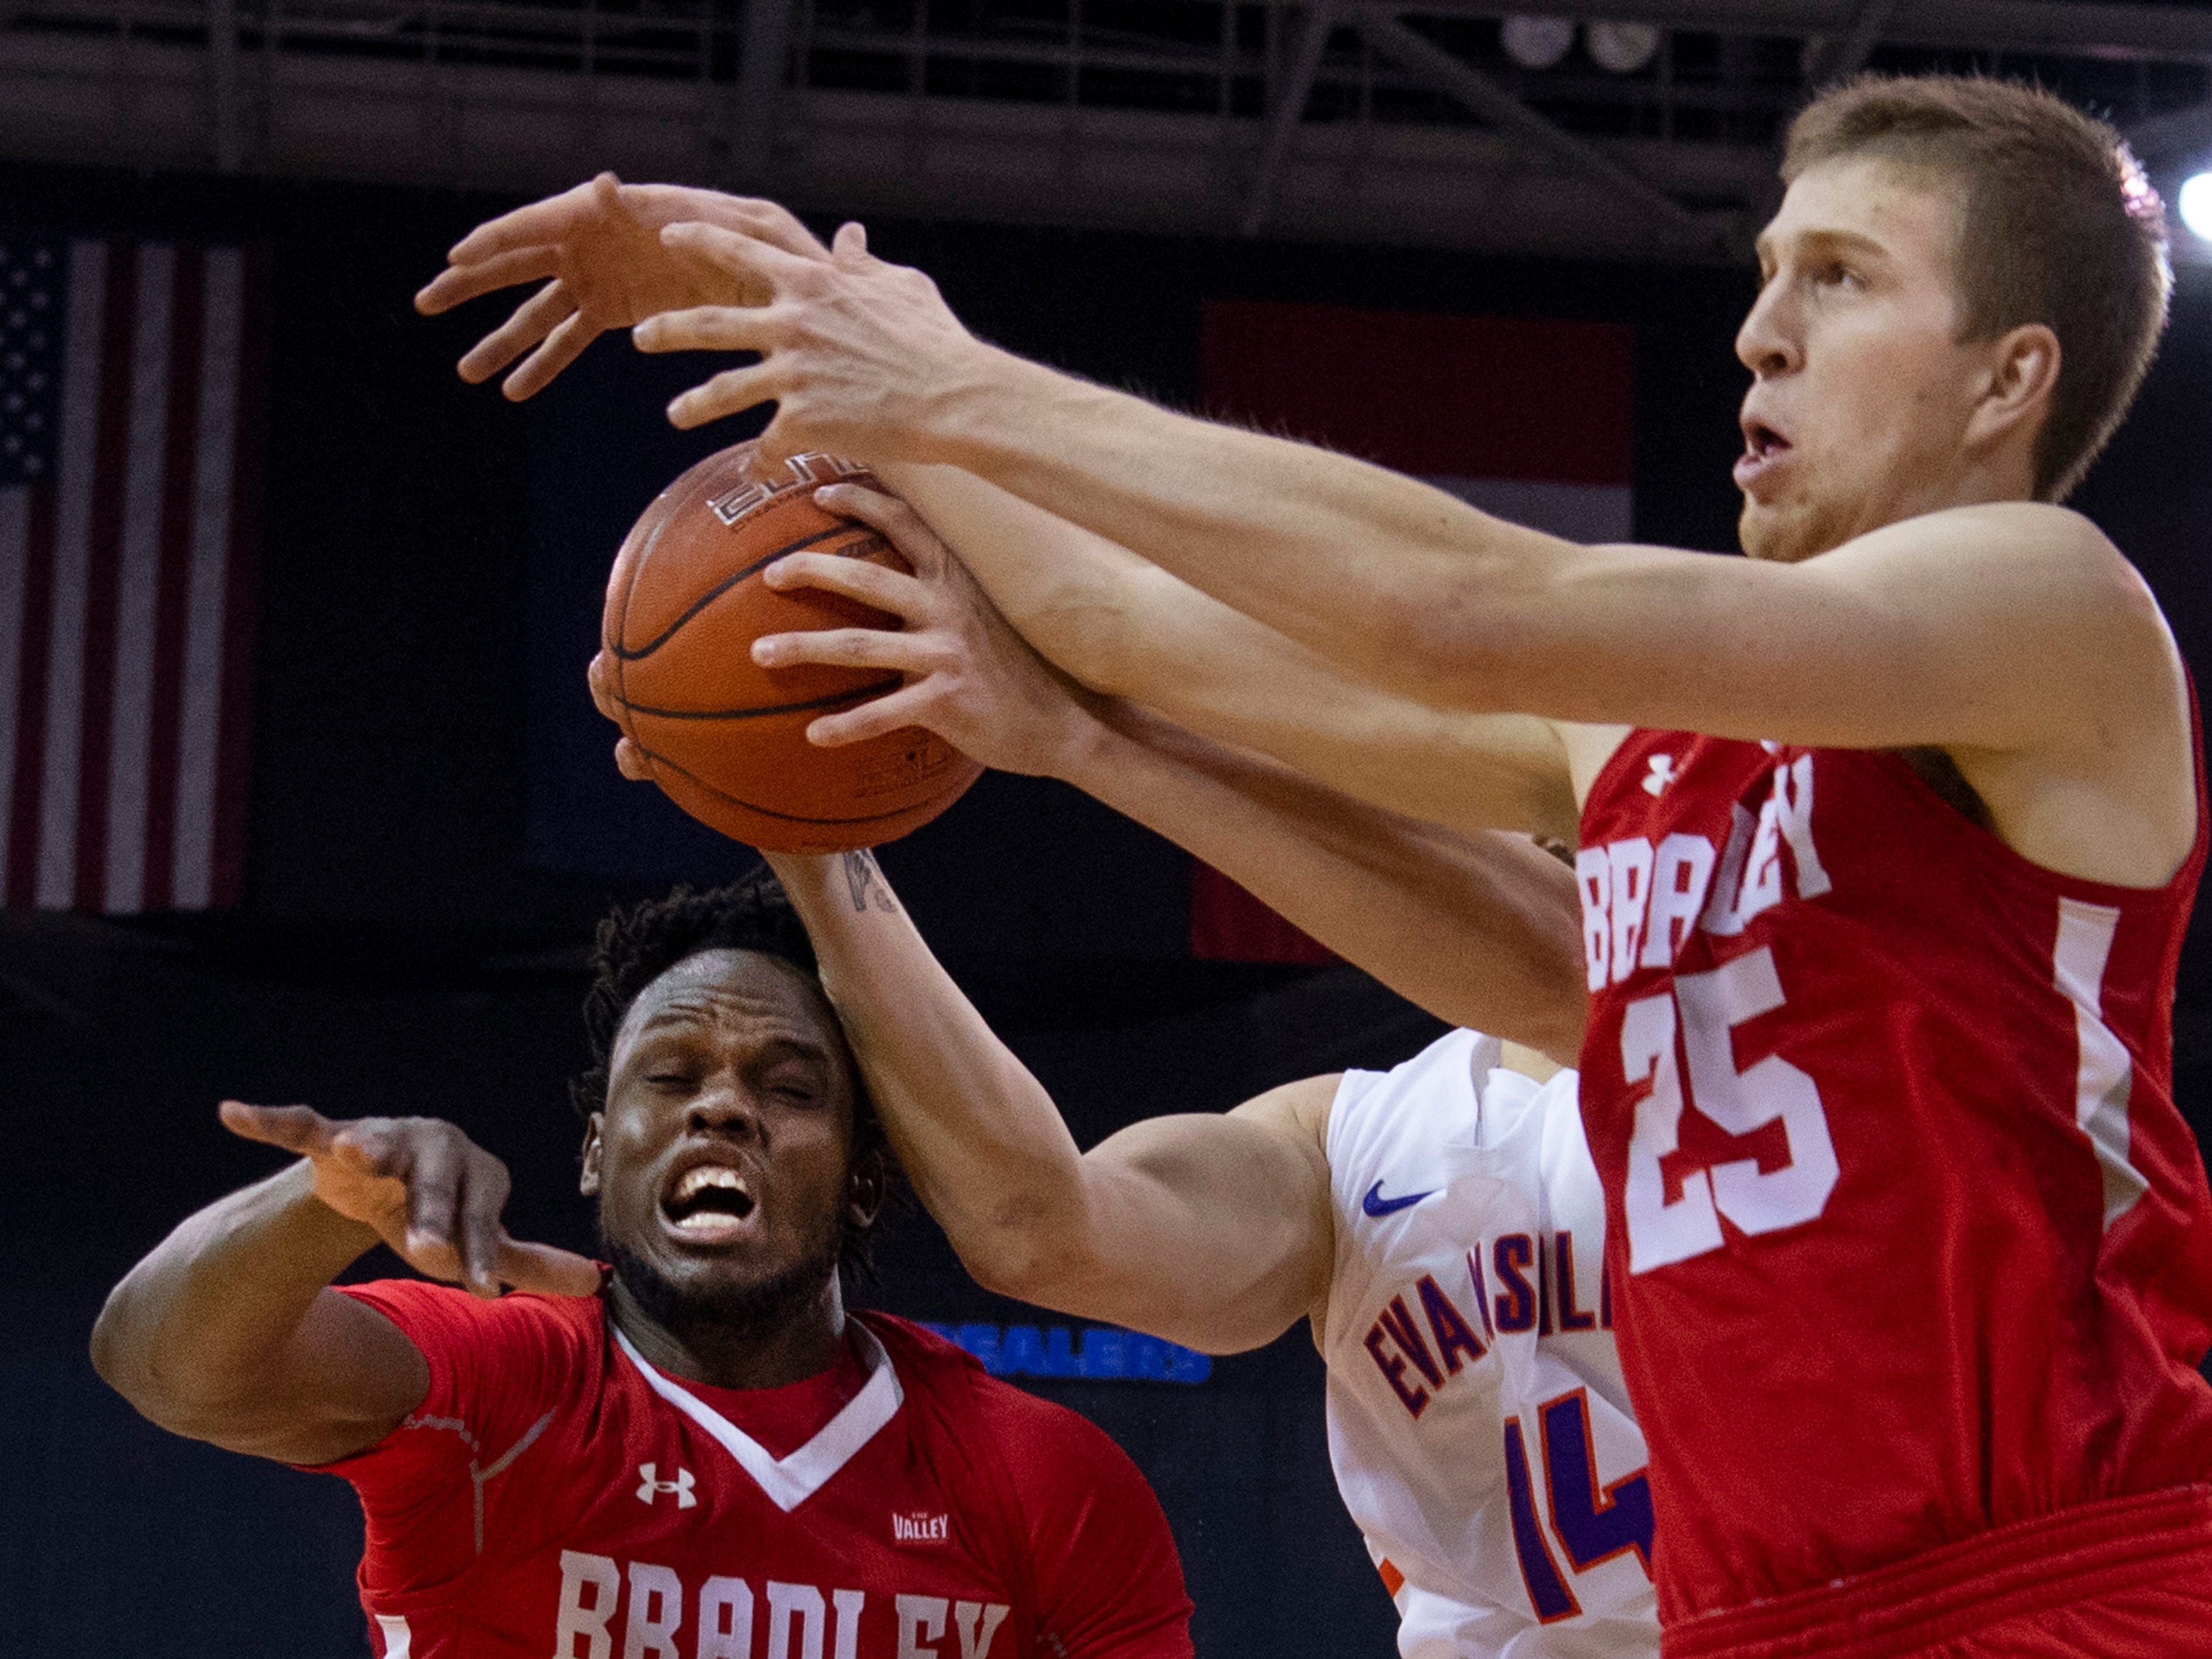 Bradley's Koch Bar (12) takes a forearm from Evansville's Dainius Chatkevicius (14) to the head as Bradley's Nate Kennell (25) defends during their game at the Ford Center Wednesday night.